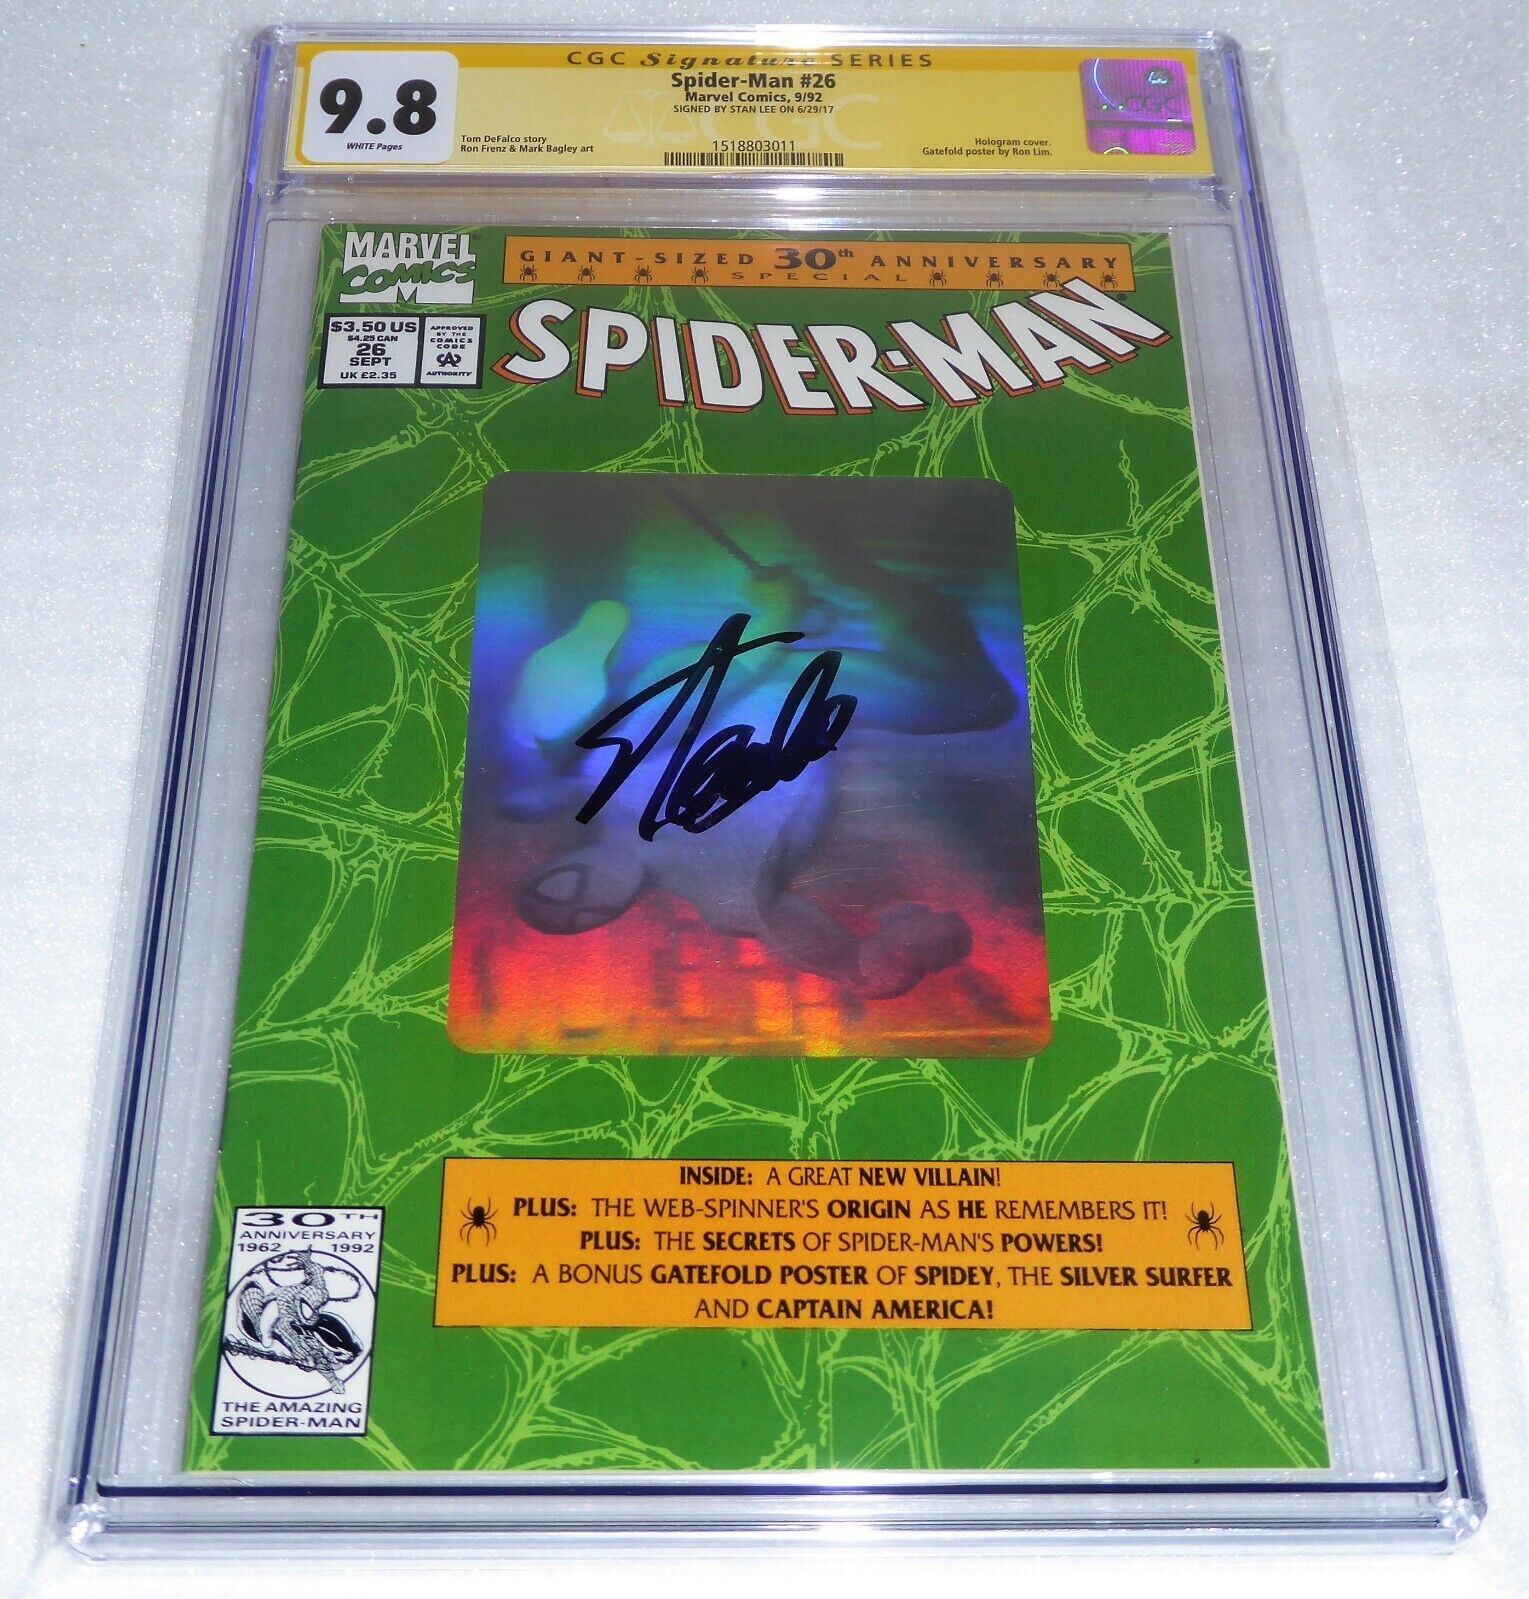 Spider-Man #26 CGC SS Signature Autograph STAN LEE 9.8 Hologram Cover Poster ASM